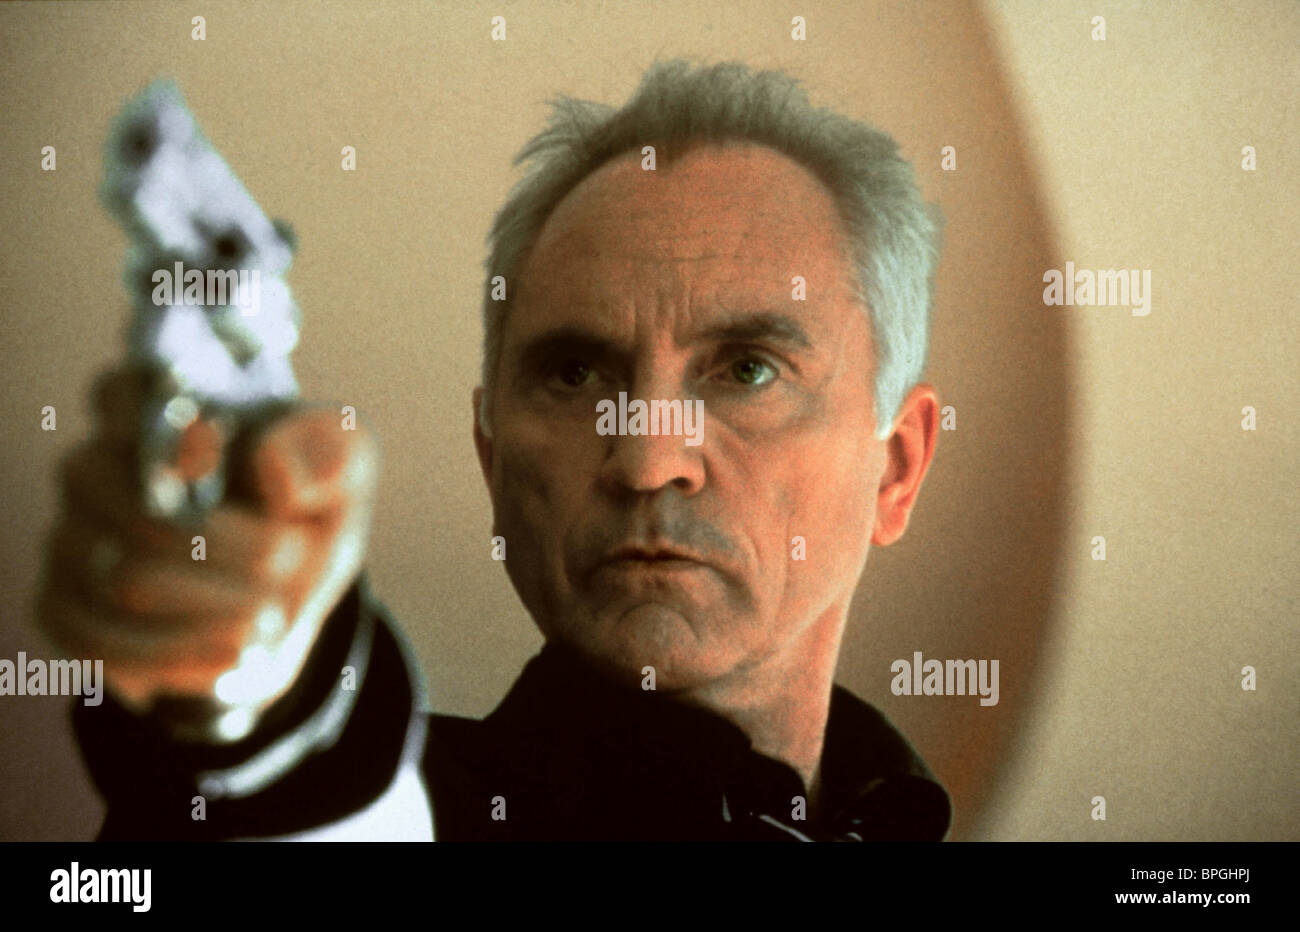 TERENCE STAMP THE LIMEY (1999) - Stock Image